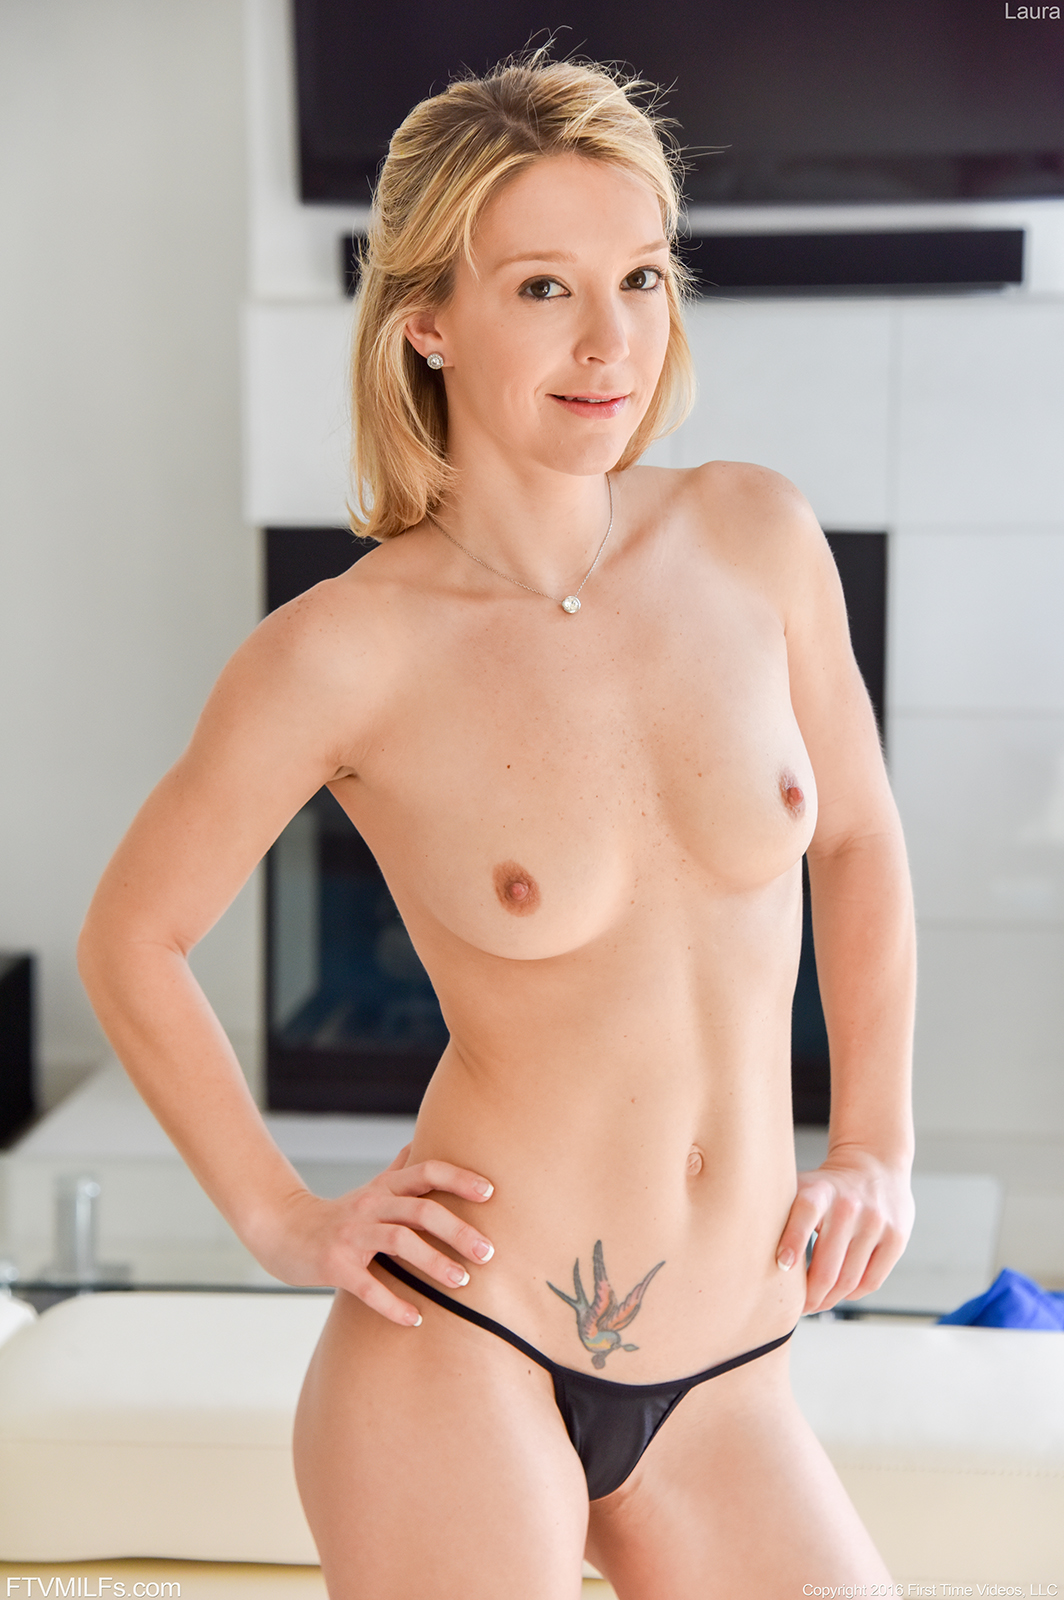 The same Naked milfs with thong on your place